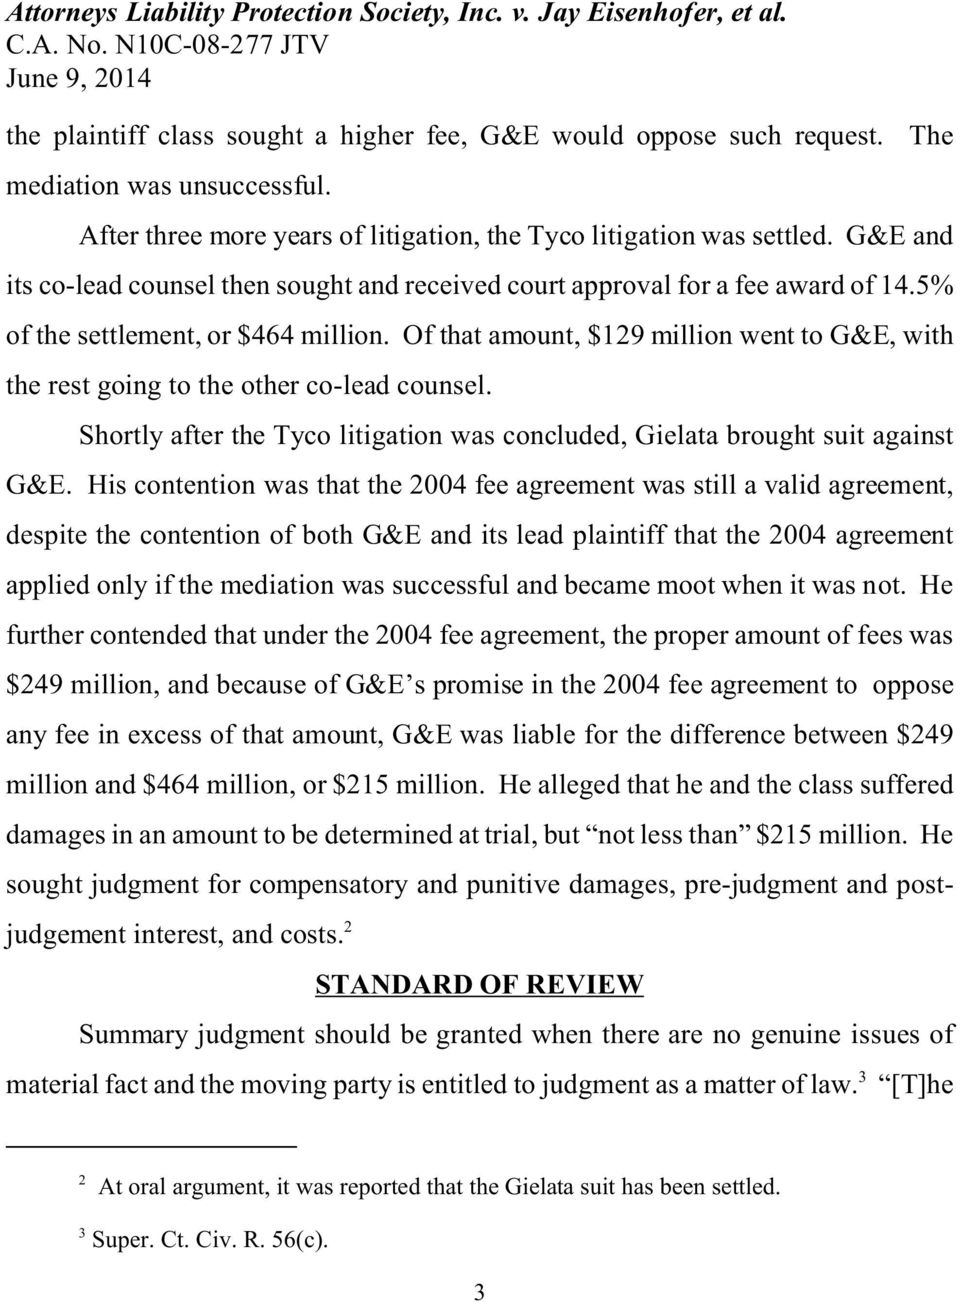 Of that amount, $129 million went to G&E, with the rest going to the other co-lead counsel. Shortly after the Tyco litigation was concluded, Gielata brought suit against G&E.